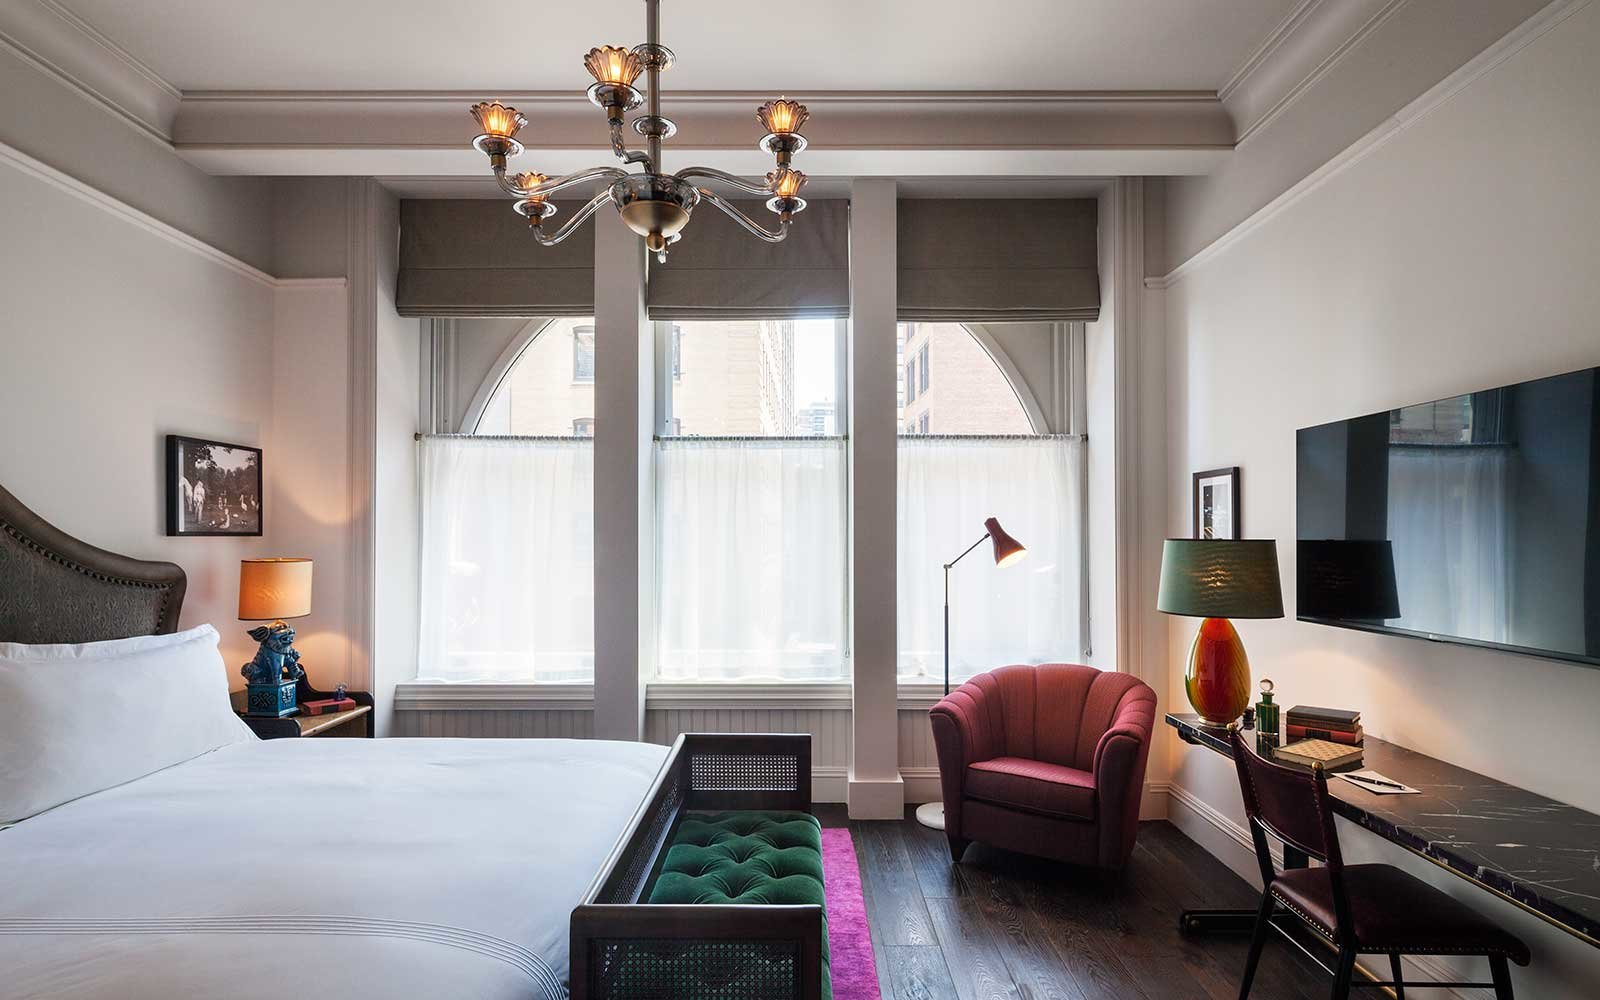 6. The Beekman, a Thompson Hotel